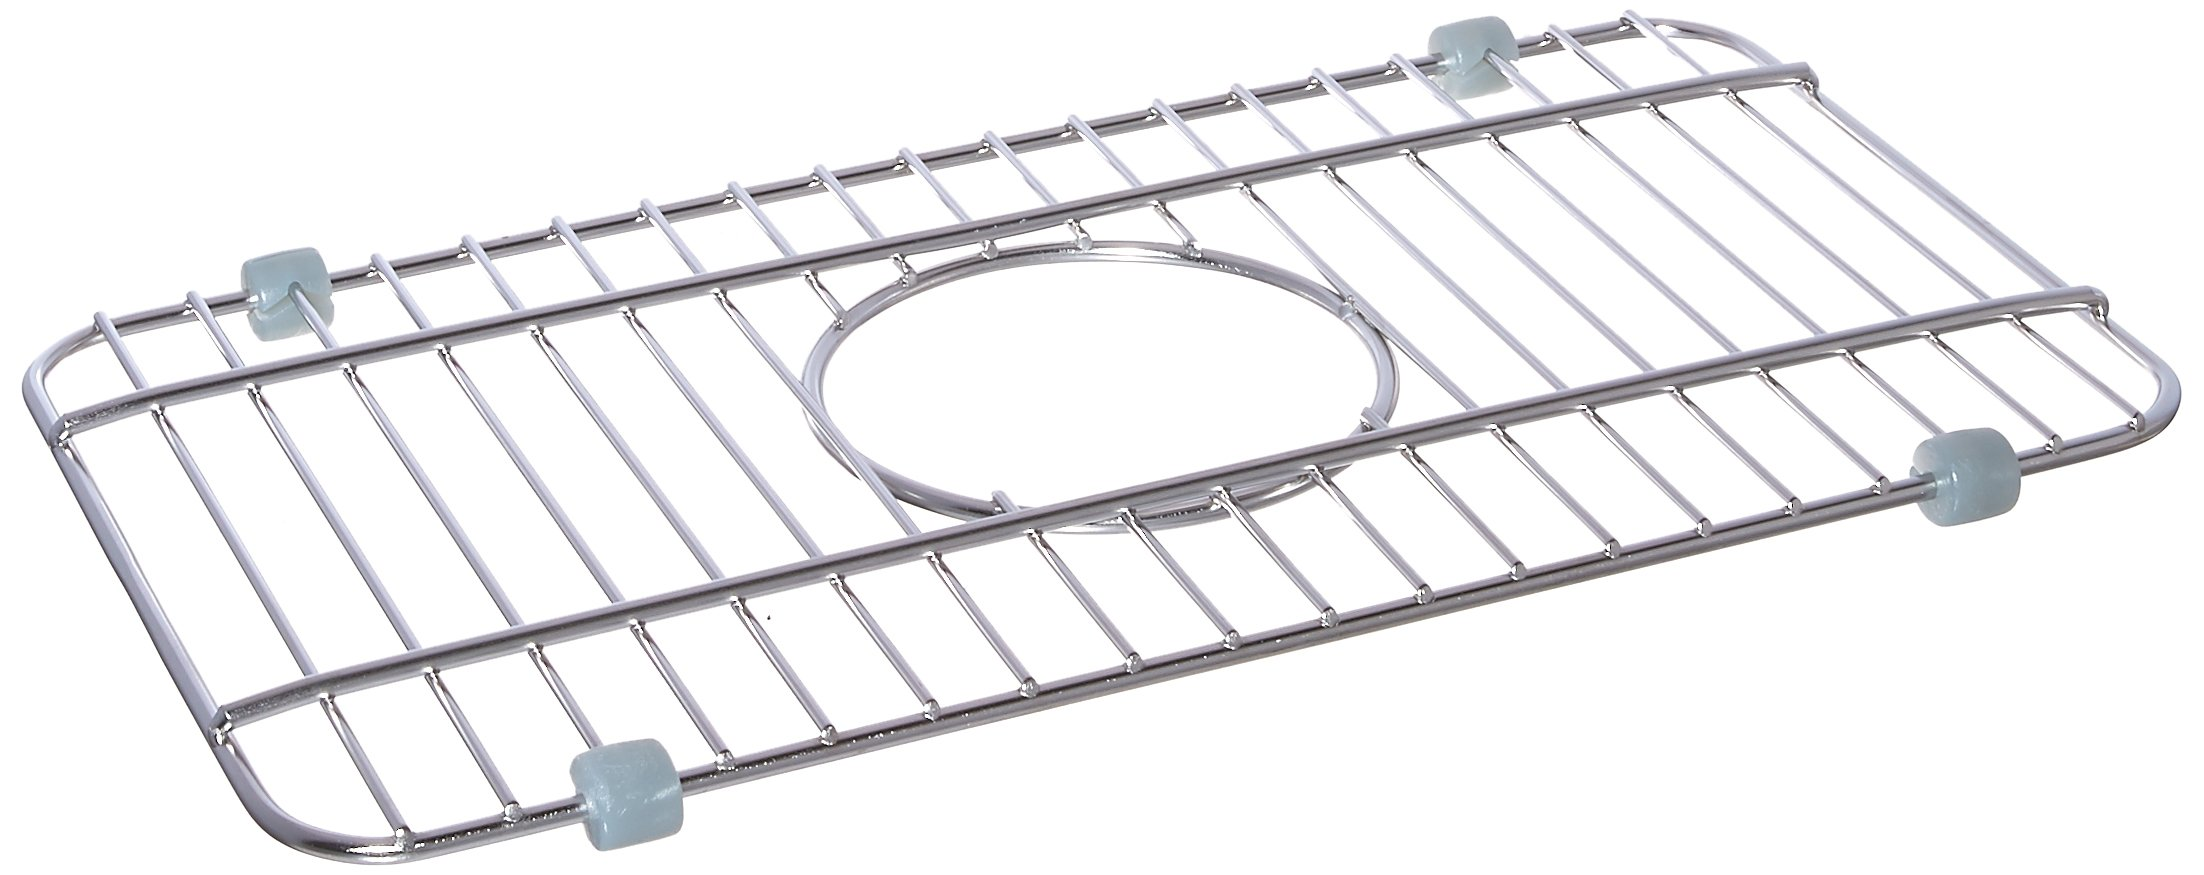 Kohler Iron/Tones Smart Divide Stainless Steel Small Sink Rack